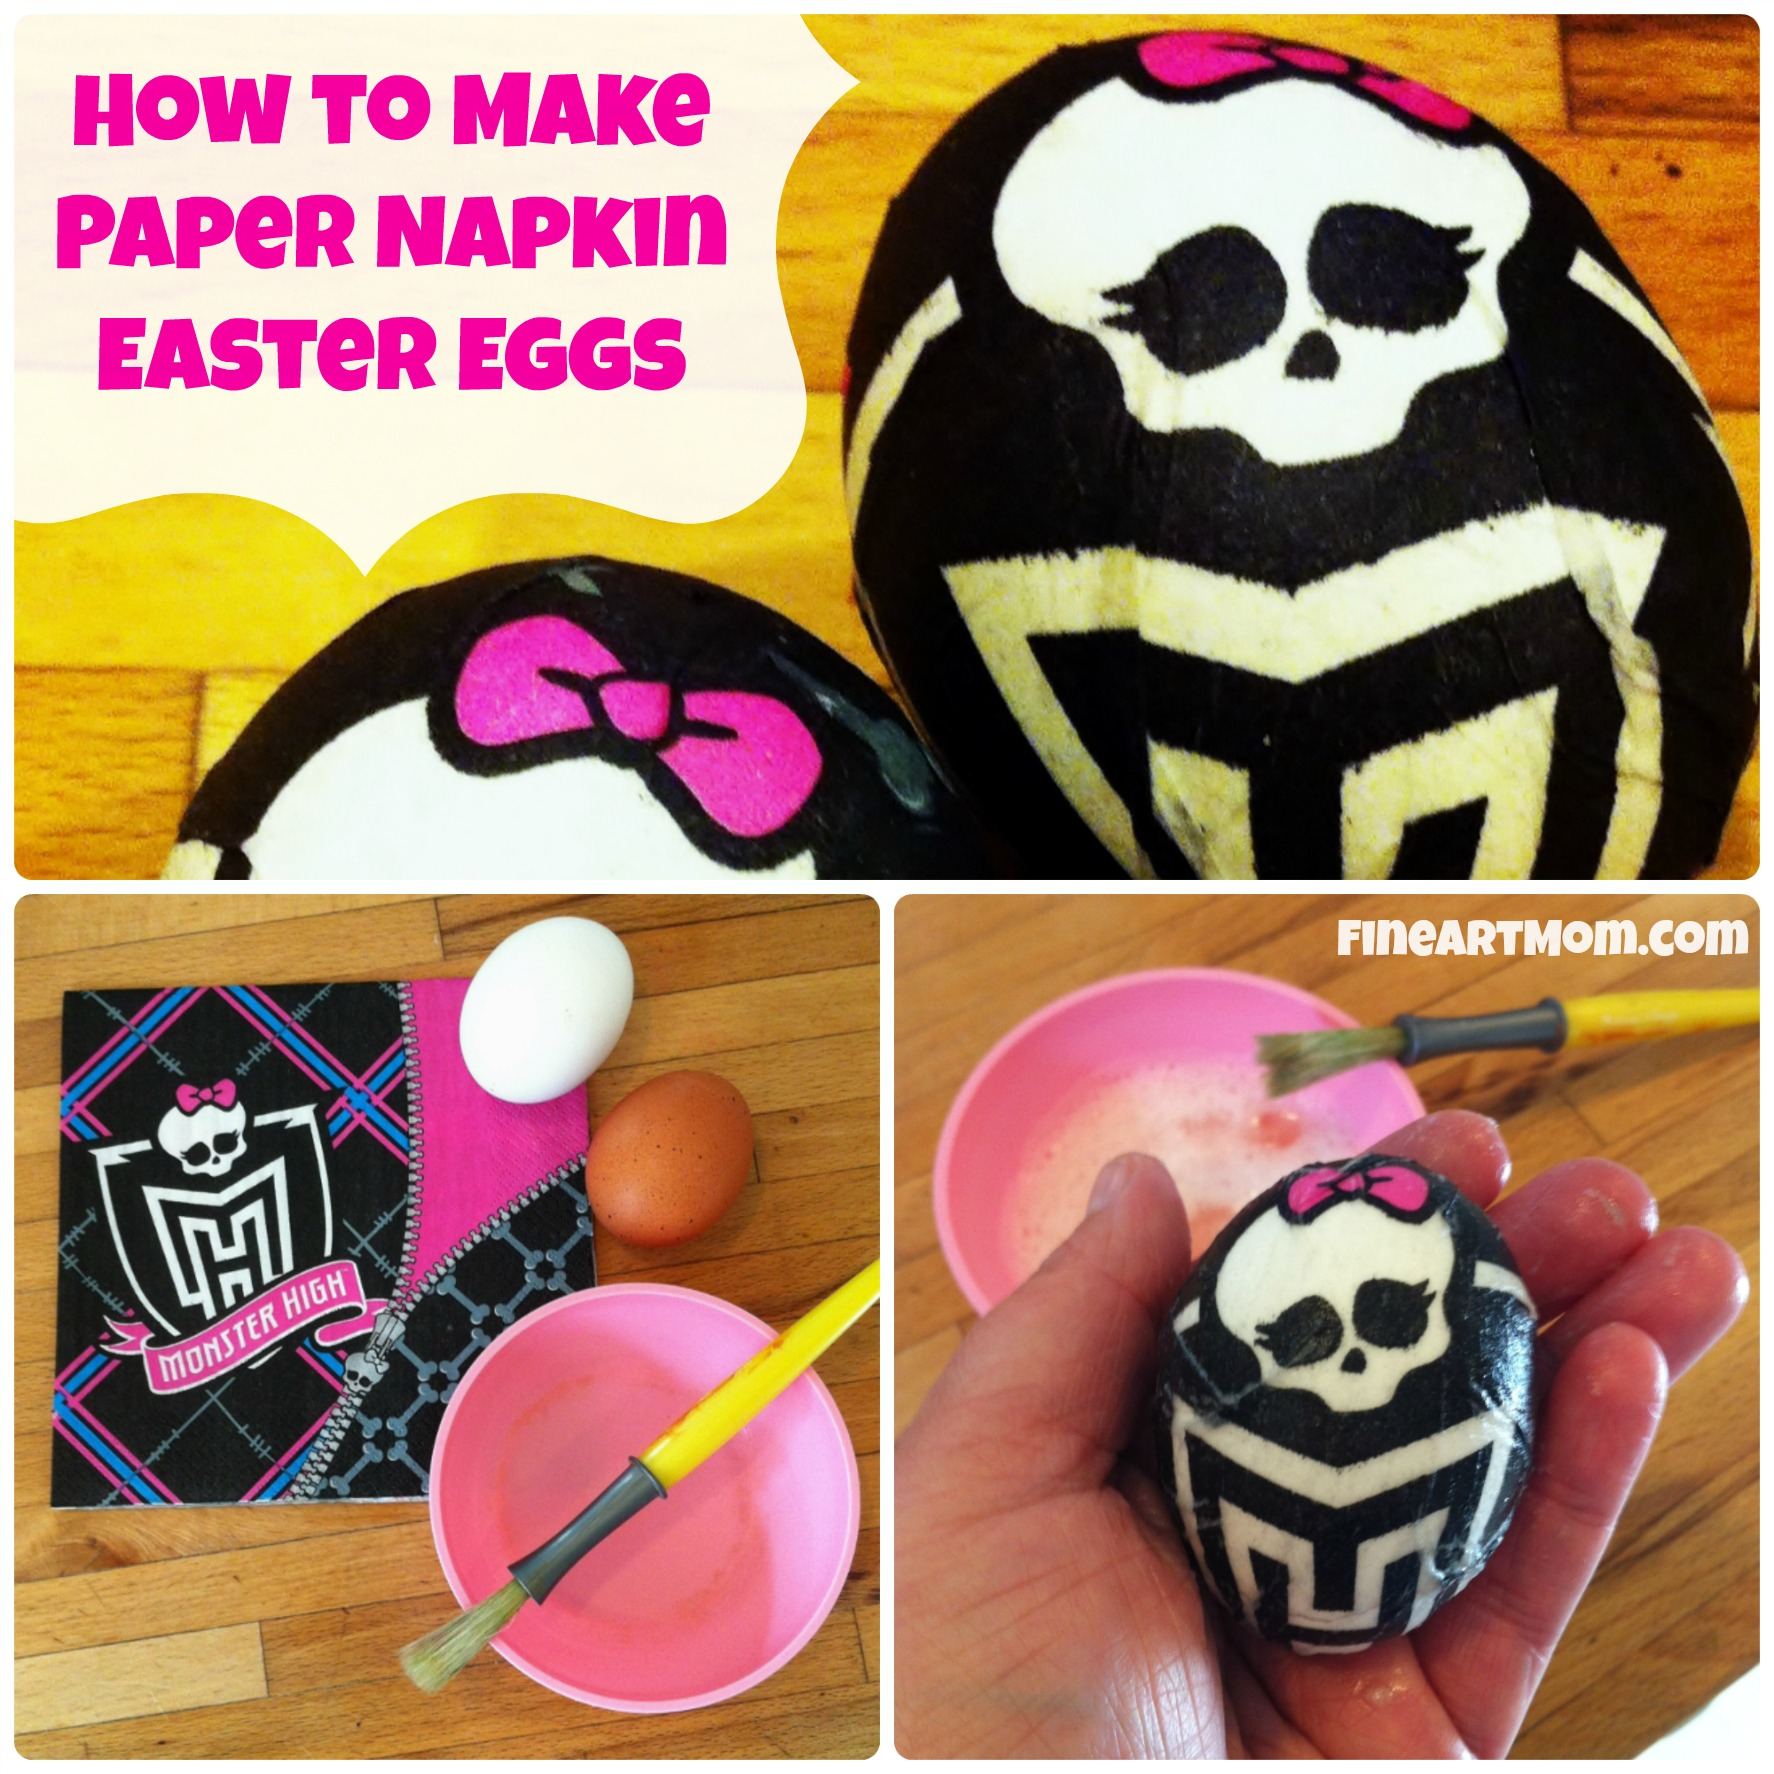 How to Make Paper Napkin Easter Eggs!